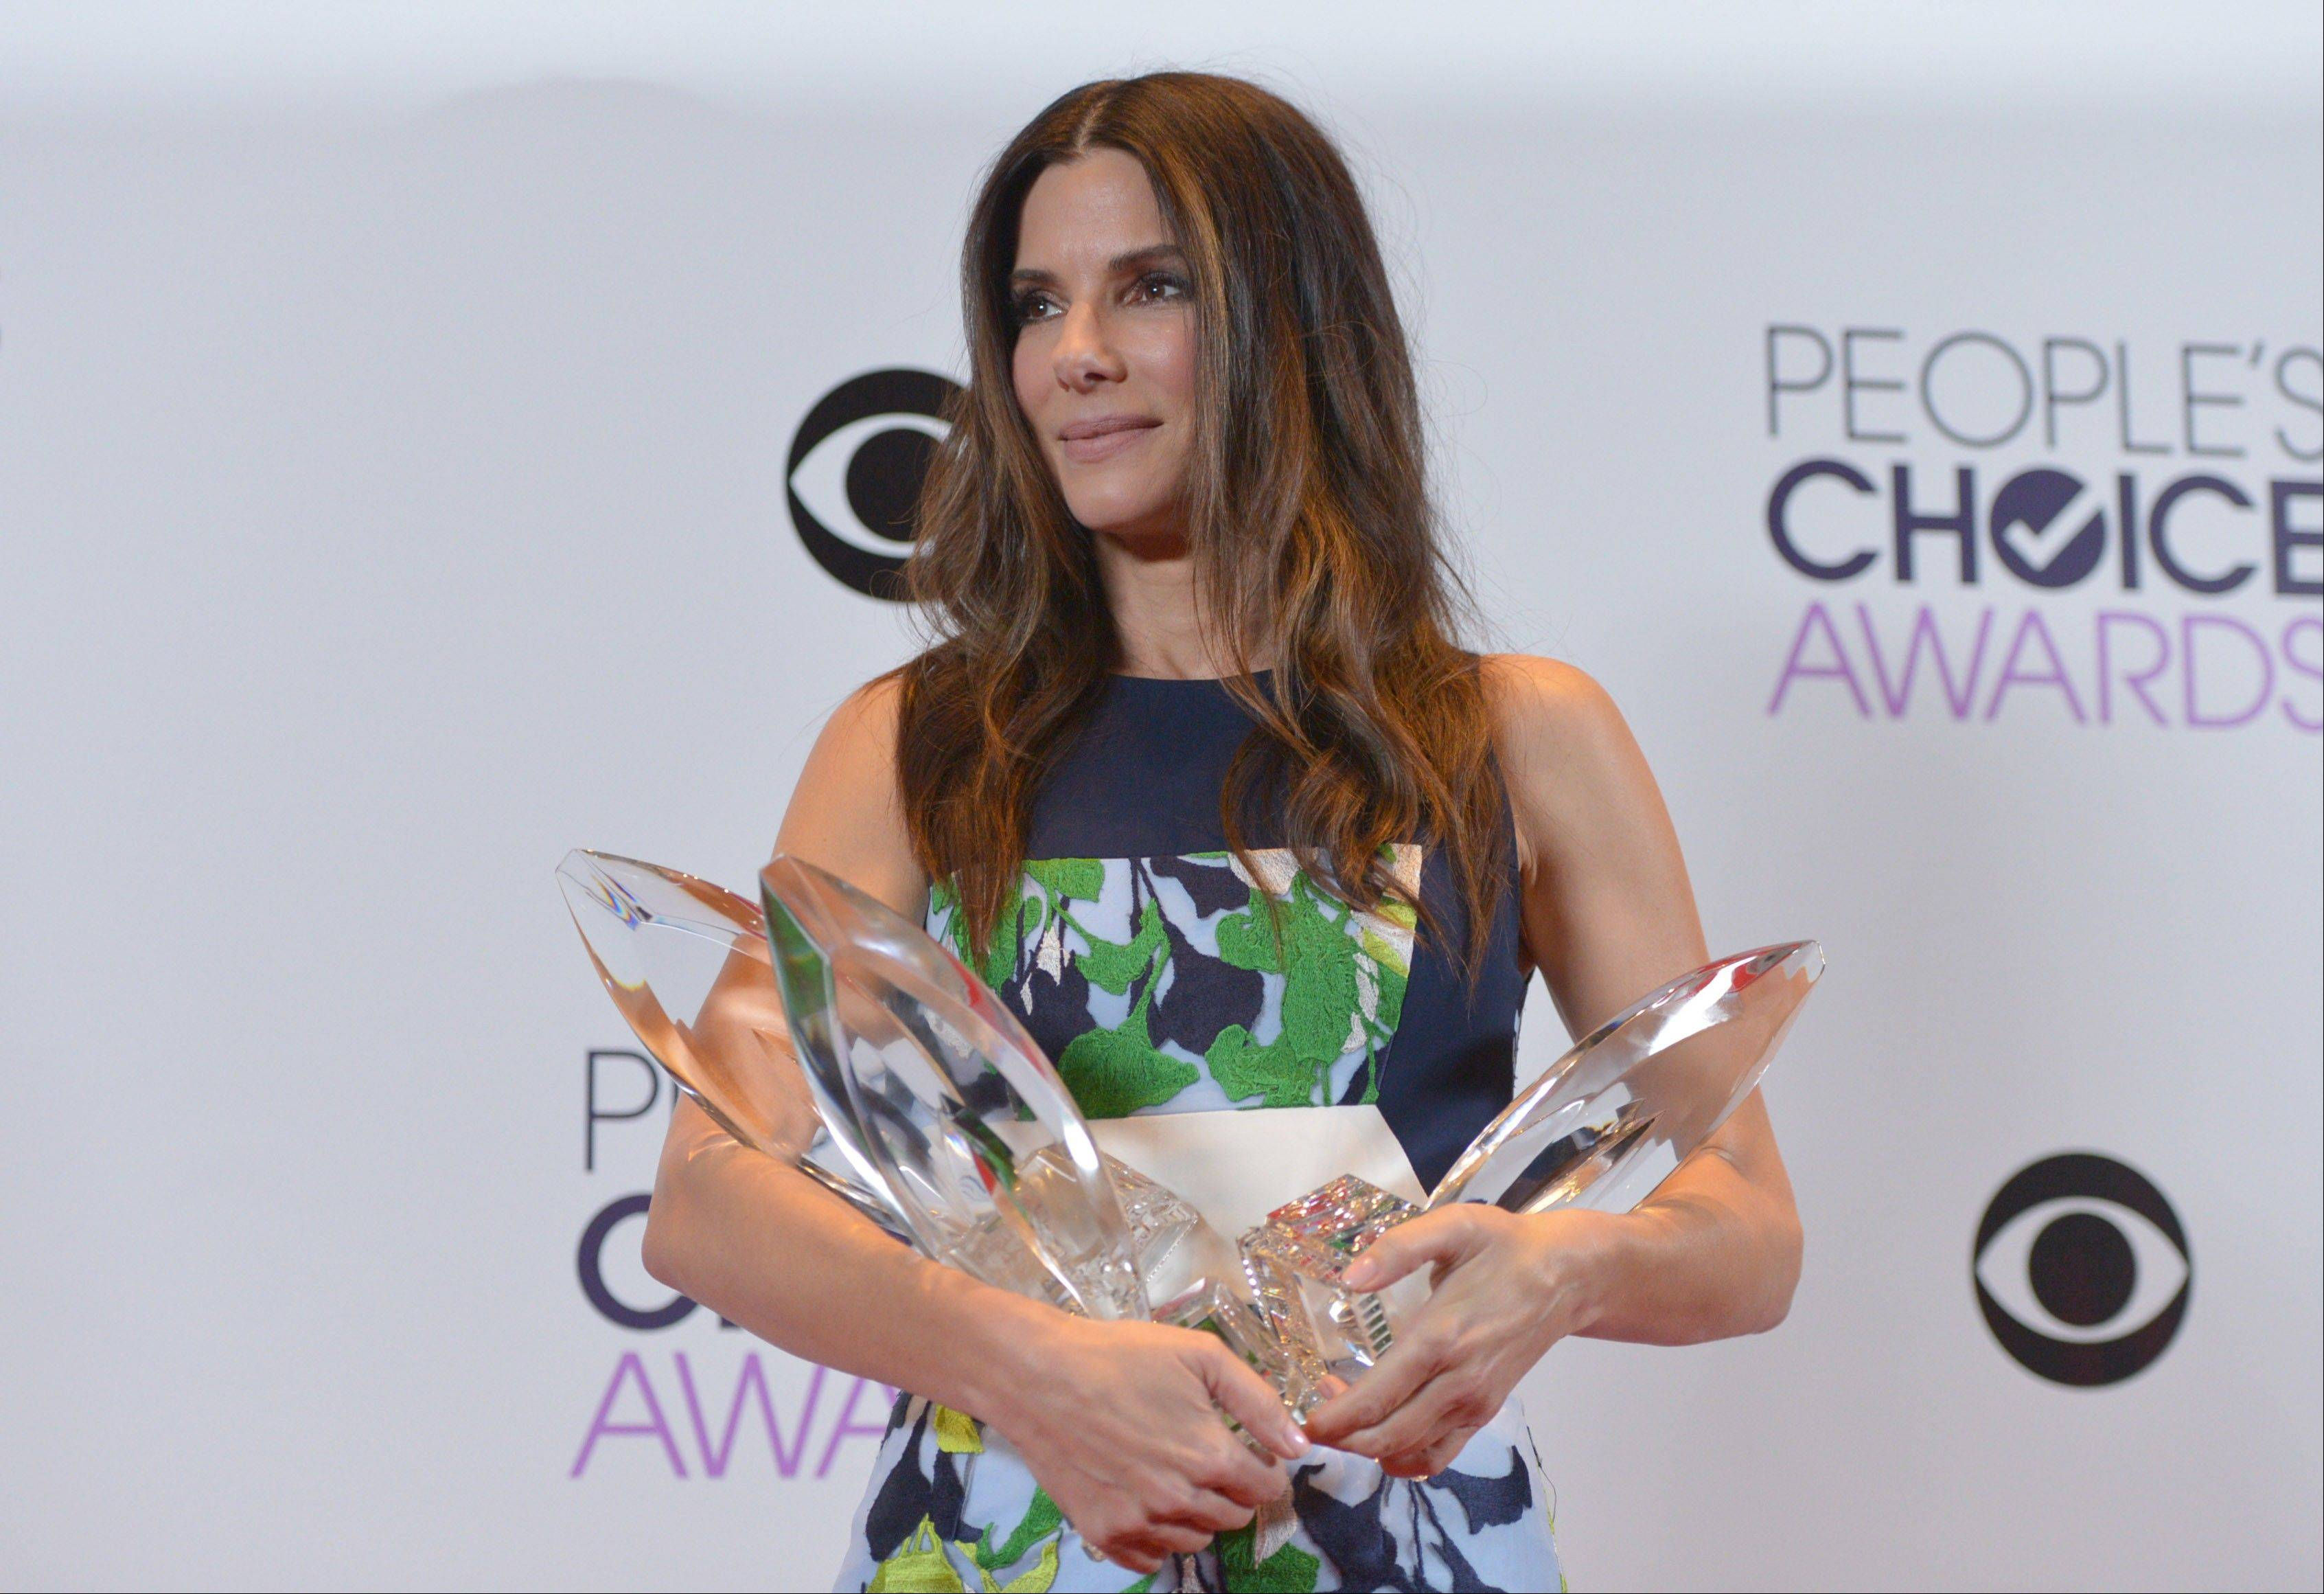 Images: People's Choice Awards